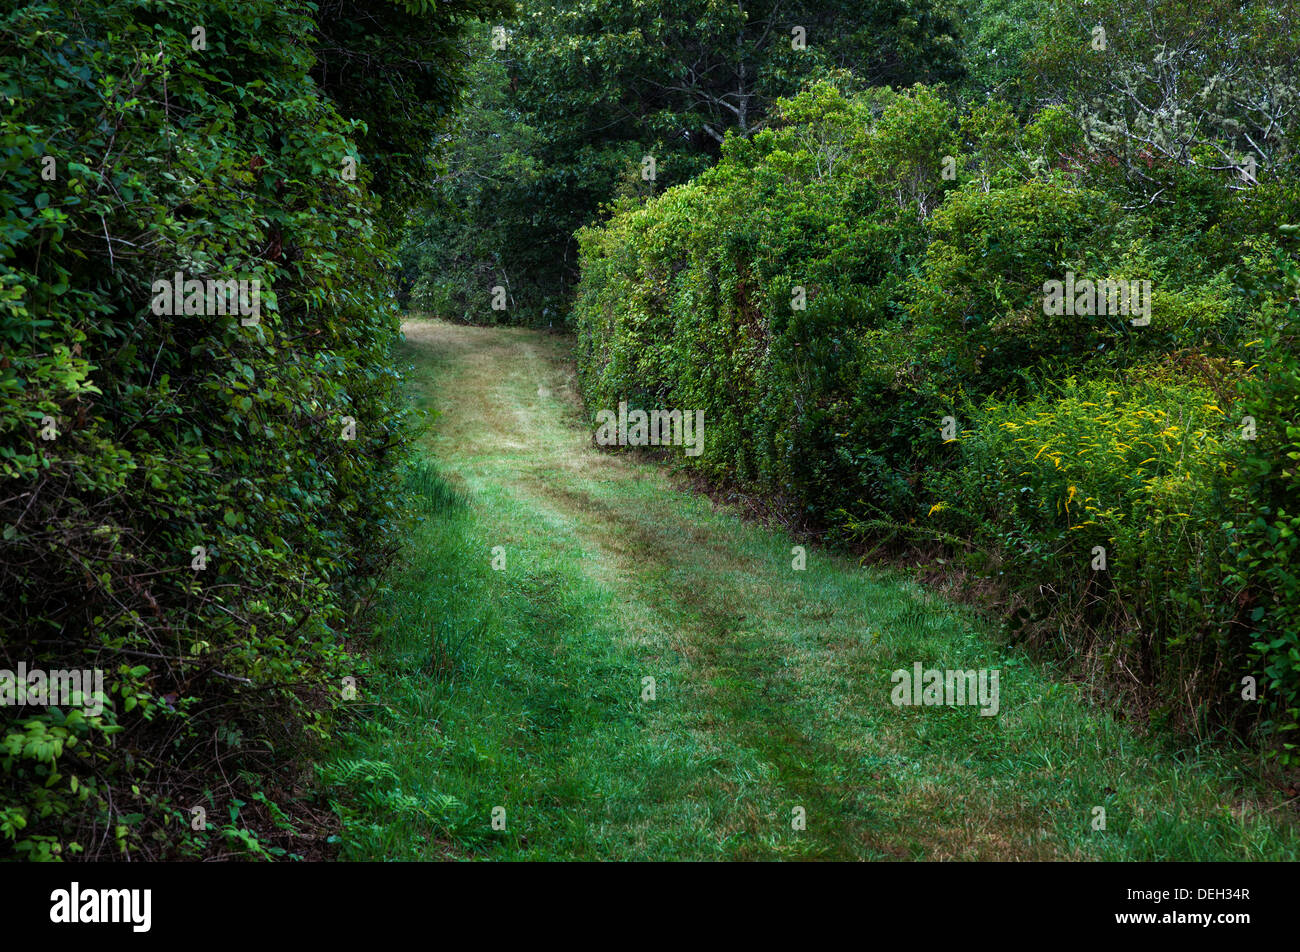 Unpaved grass country road. - Stock Image